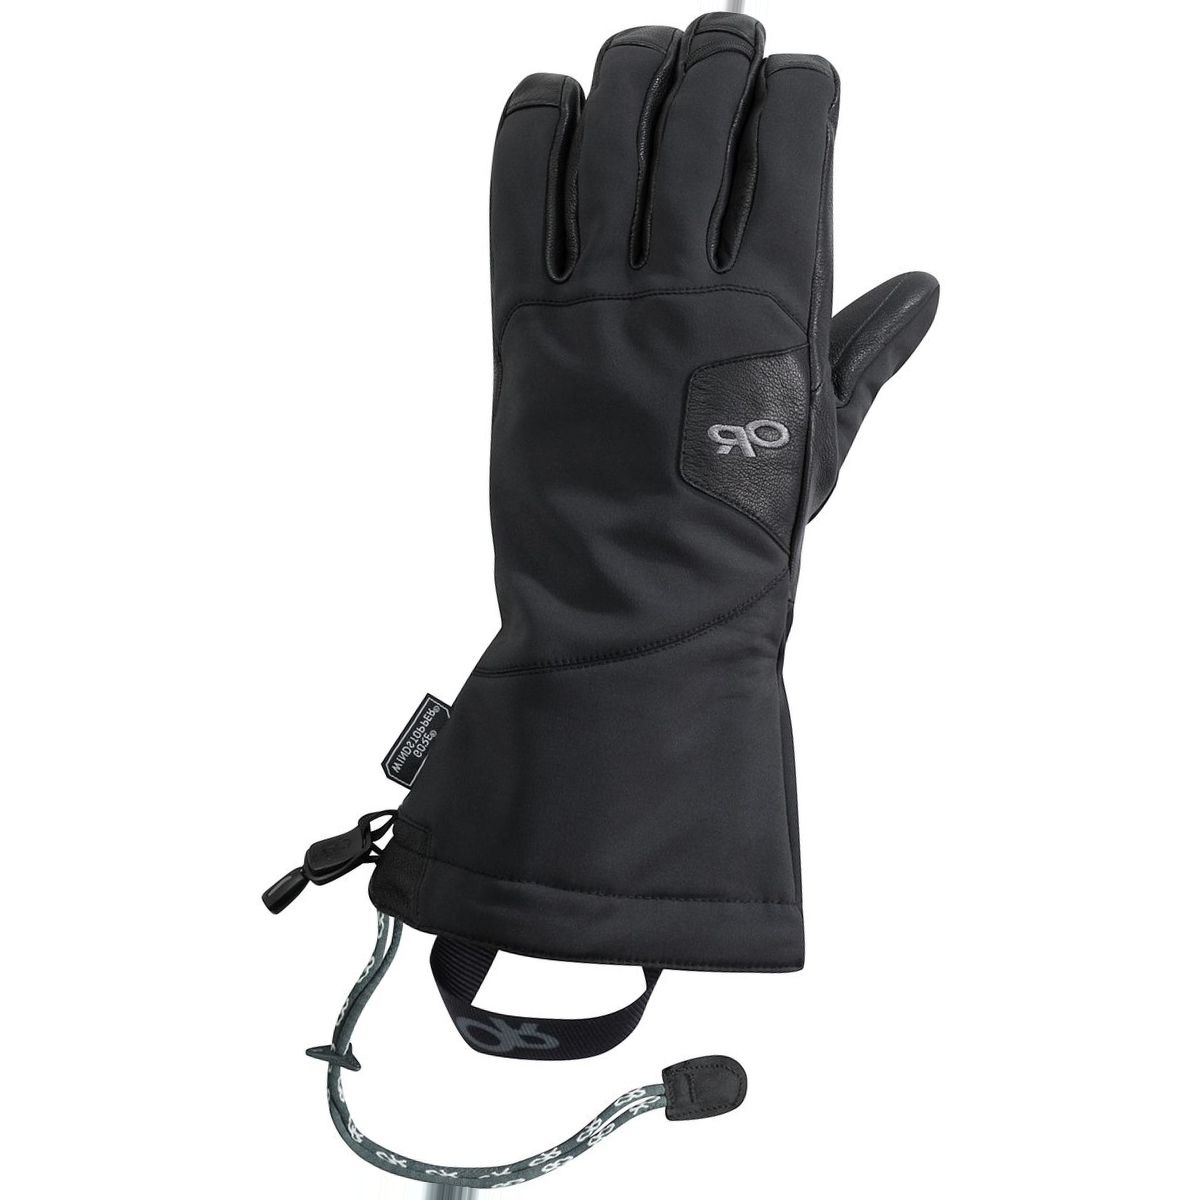 Outdoor Research Luminary Sensor Glove - Men's